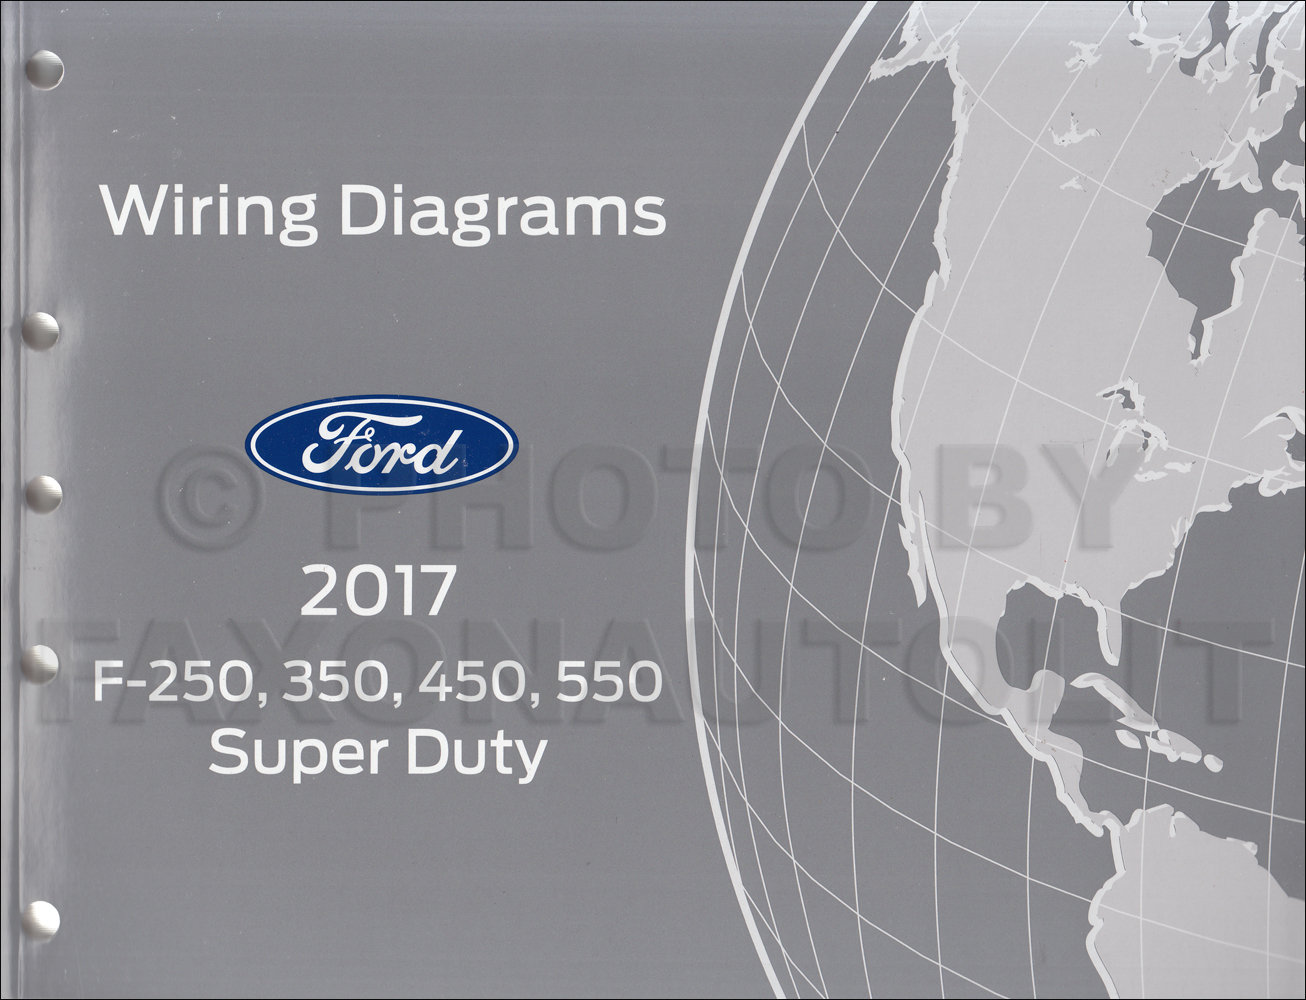 2017 Ford F250 F550 Super Dutytruck Wiring Diagram Manual Original Ford  F550 Steering Column Wiring Ford F550 Wiring